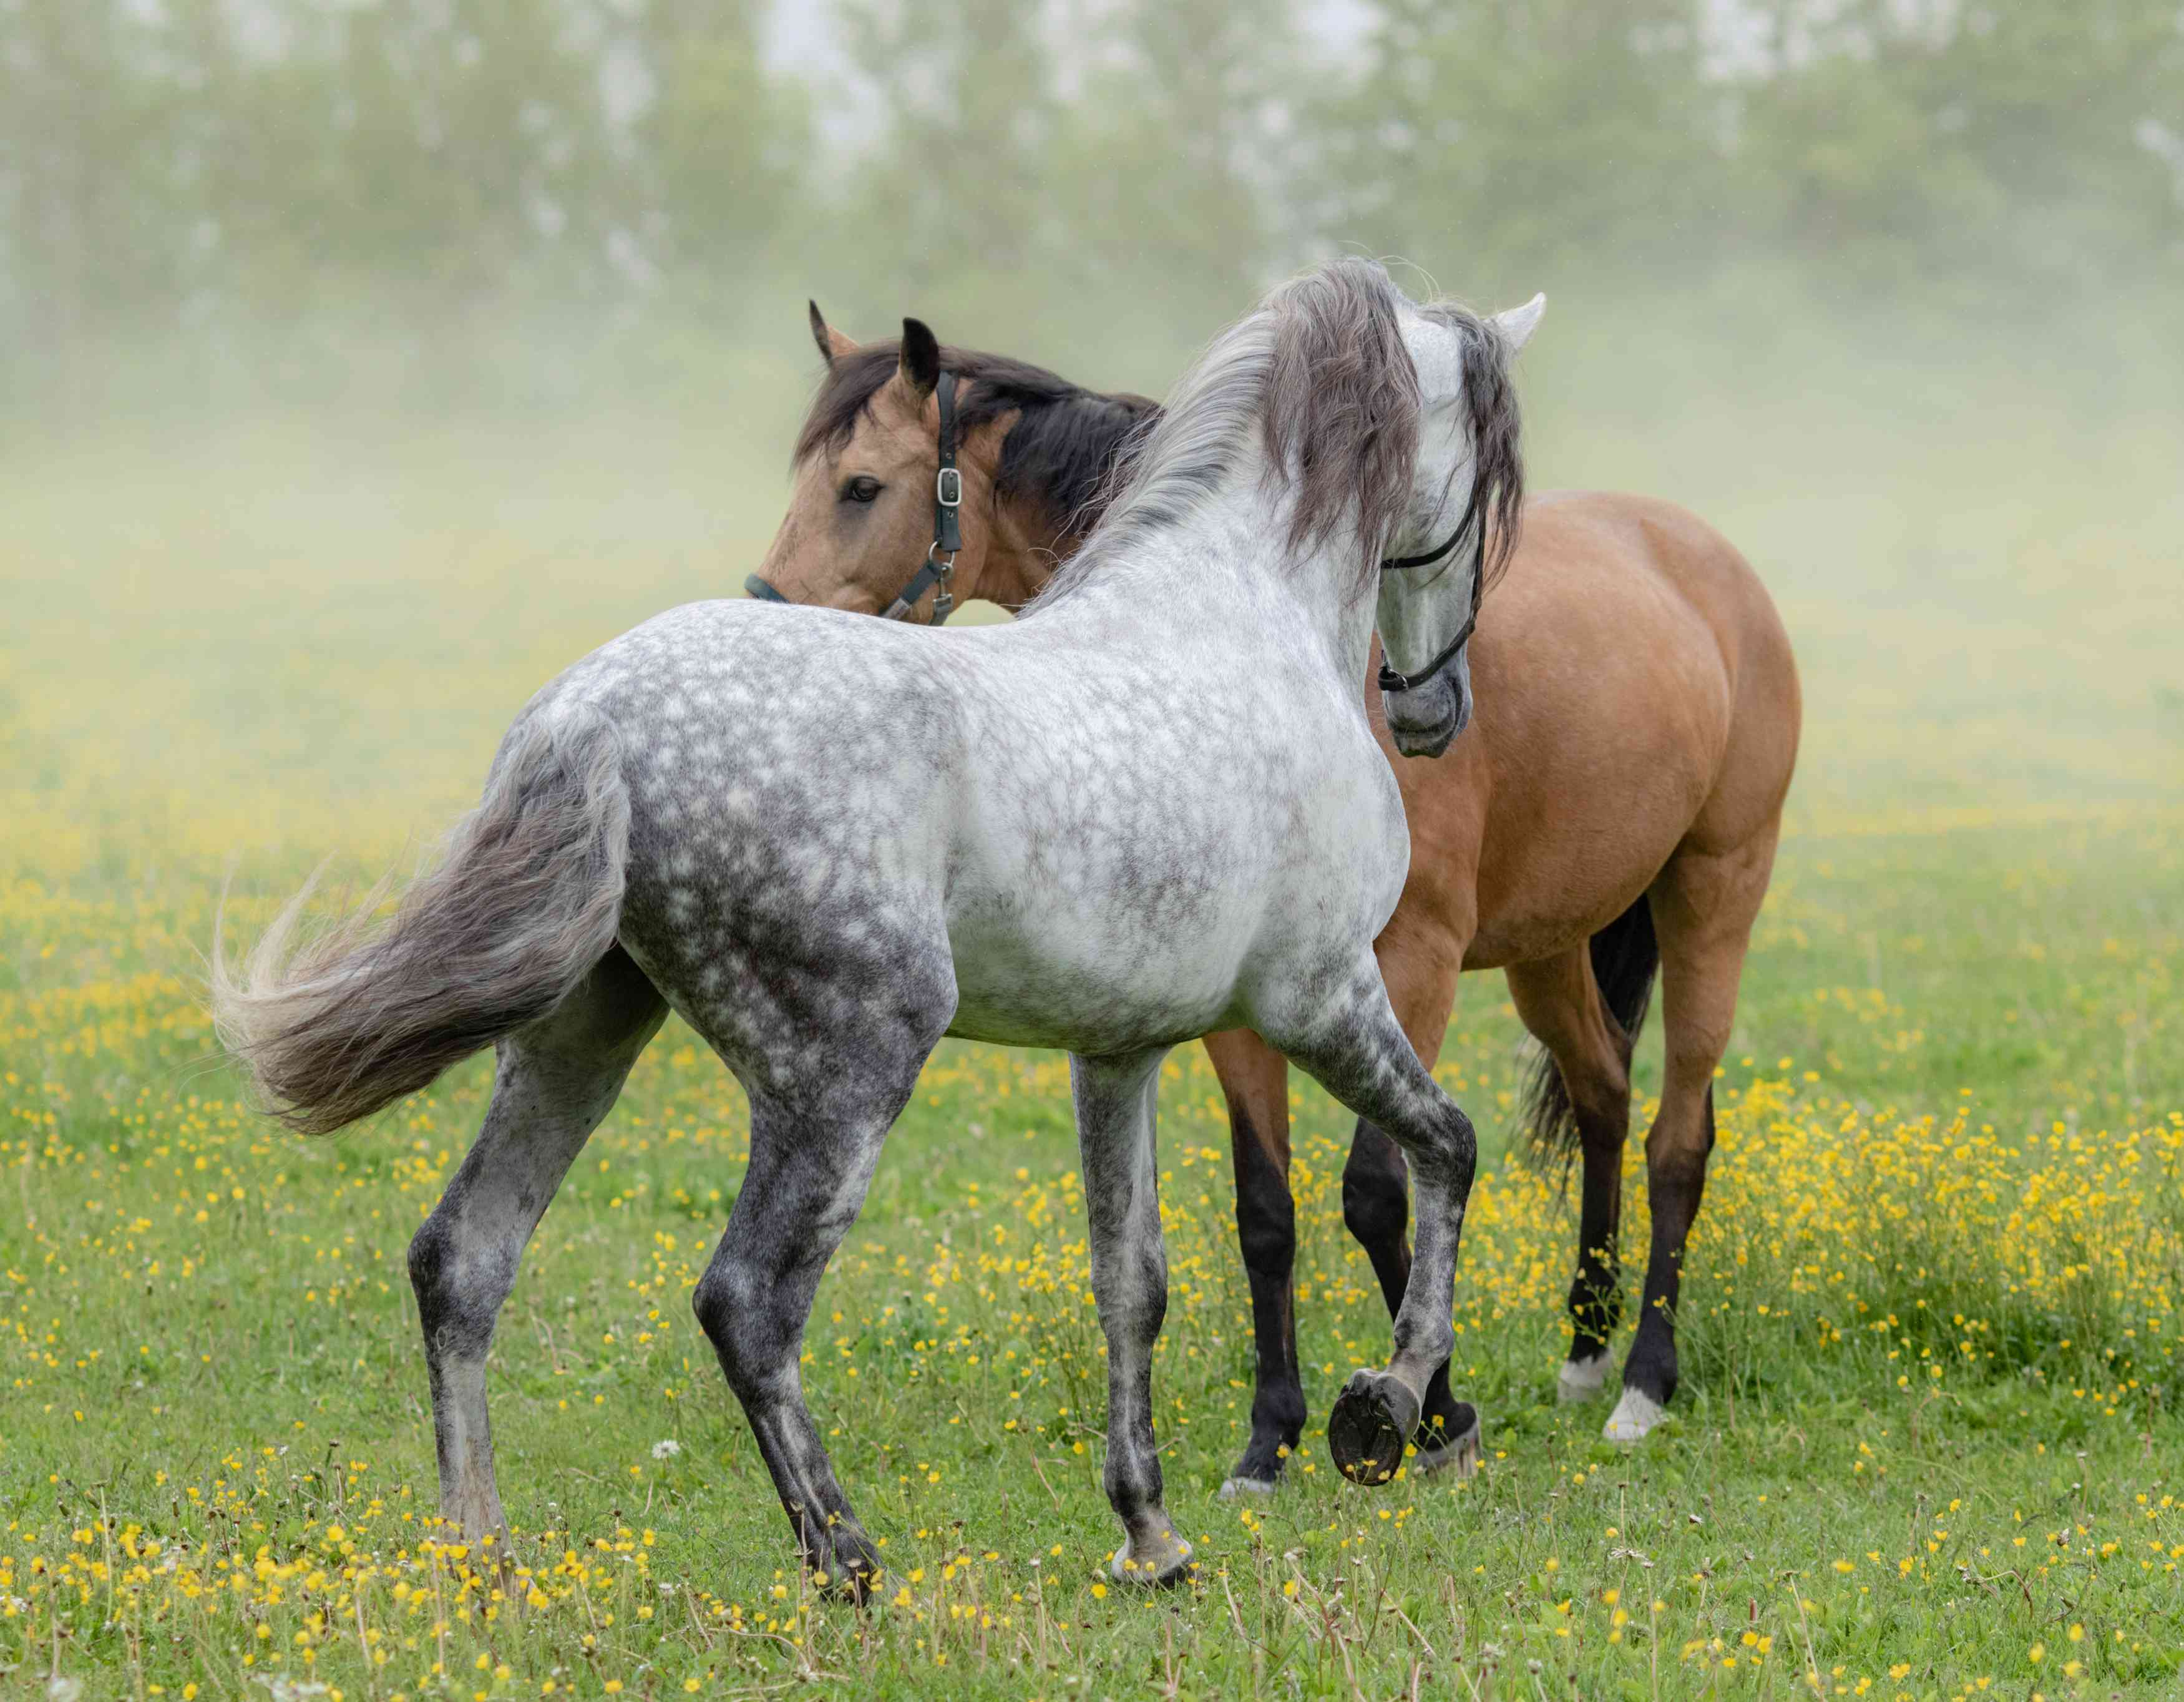 Grey and bay Andalusians in a field of flowers